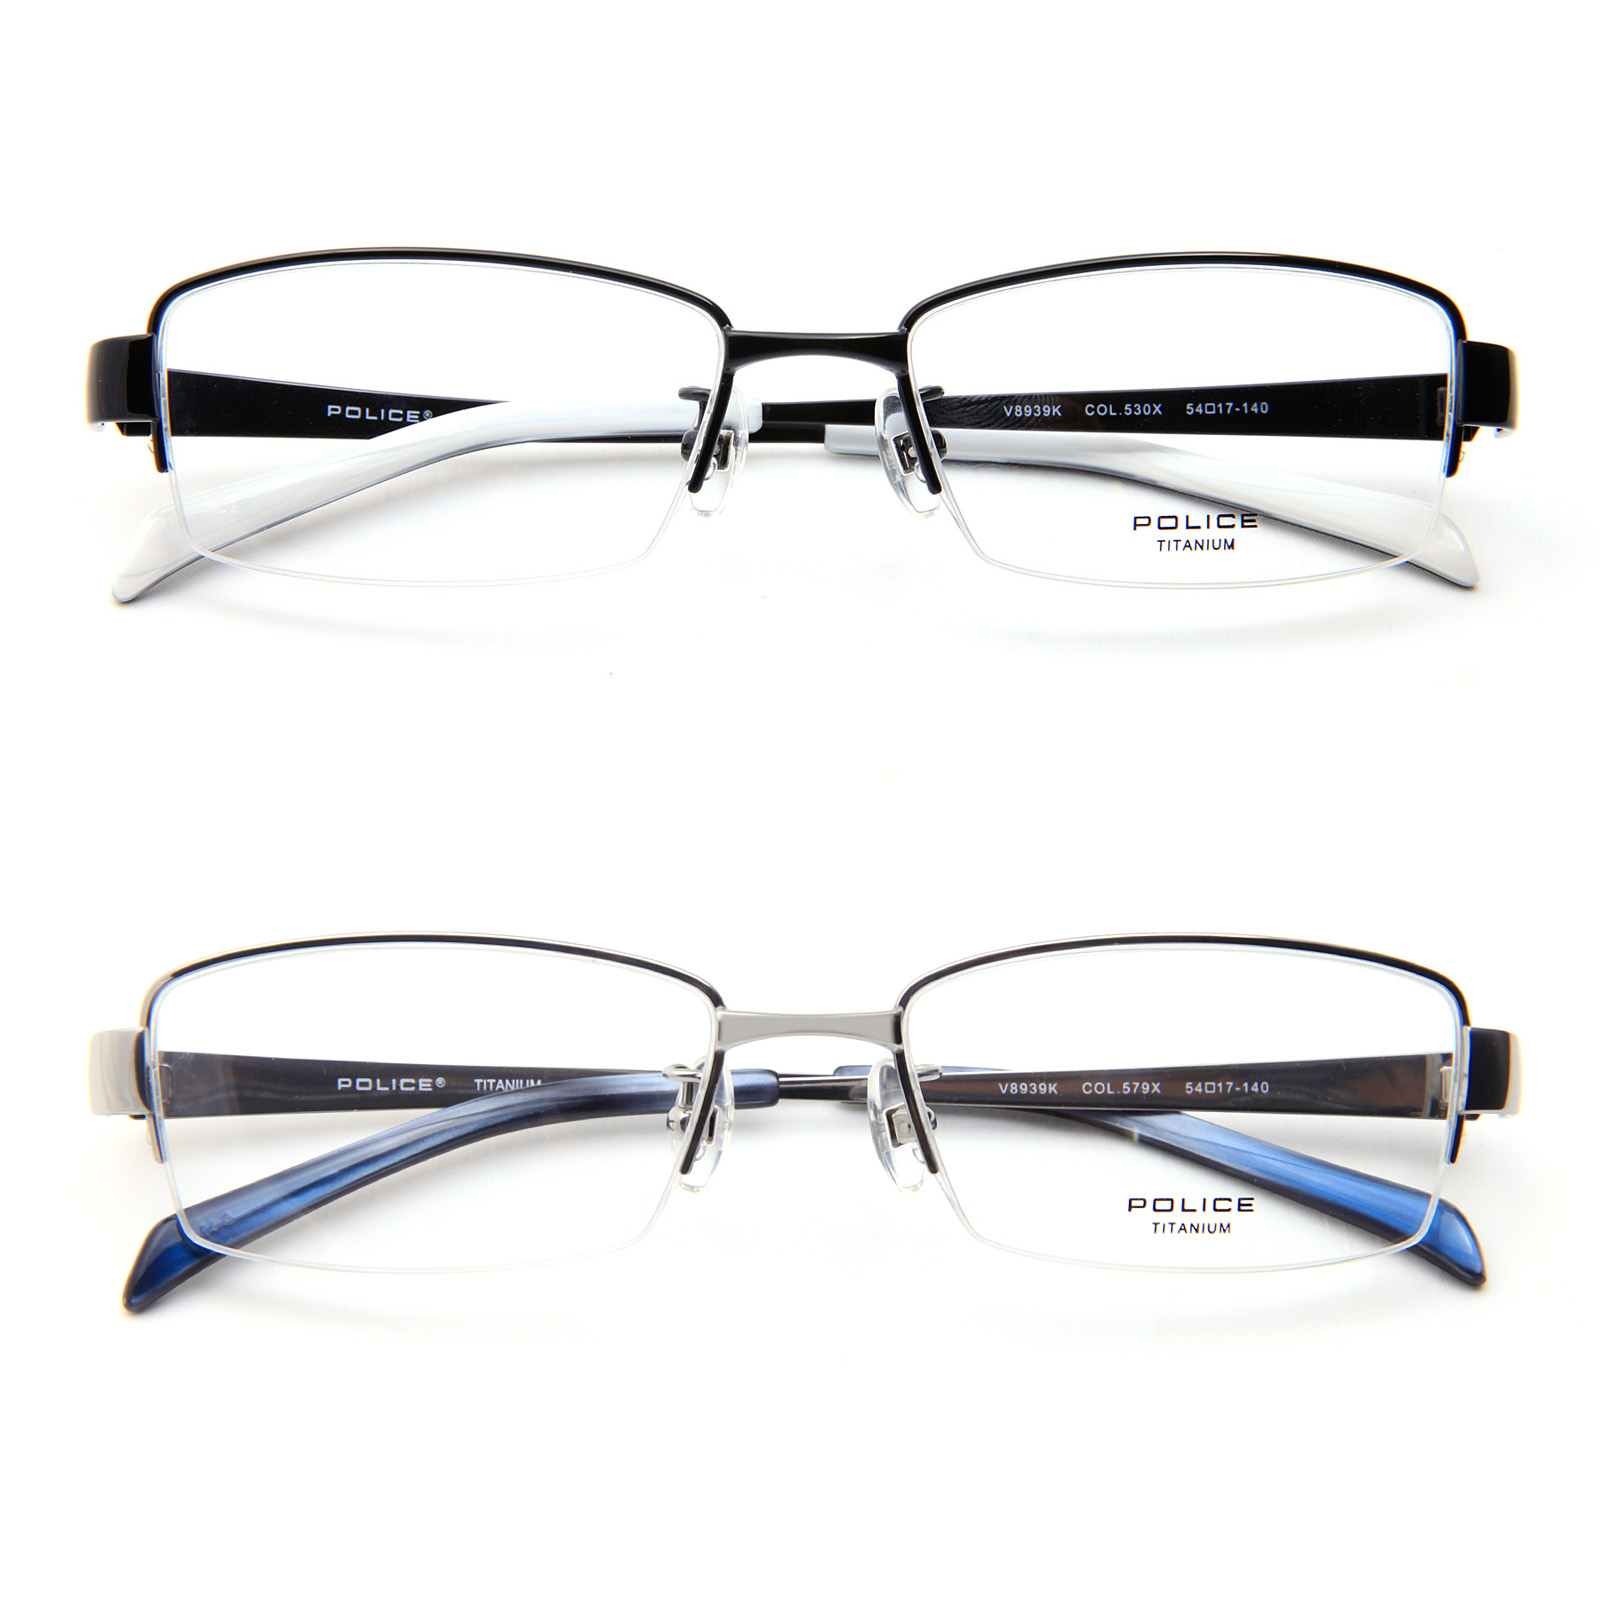 Police Retro Mens V8939k Glasses Reading Semi Rimless